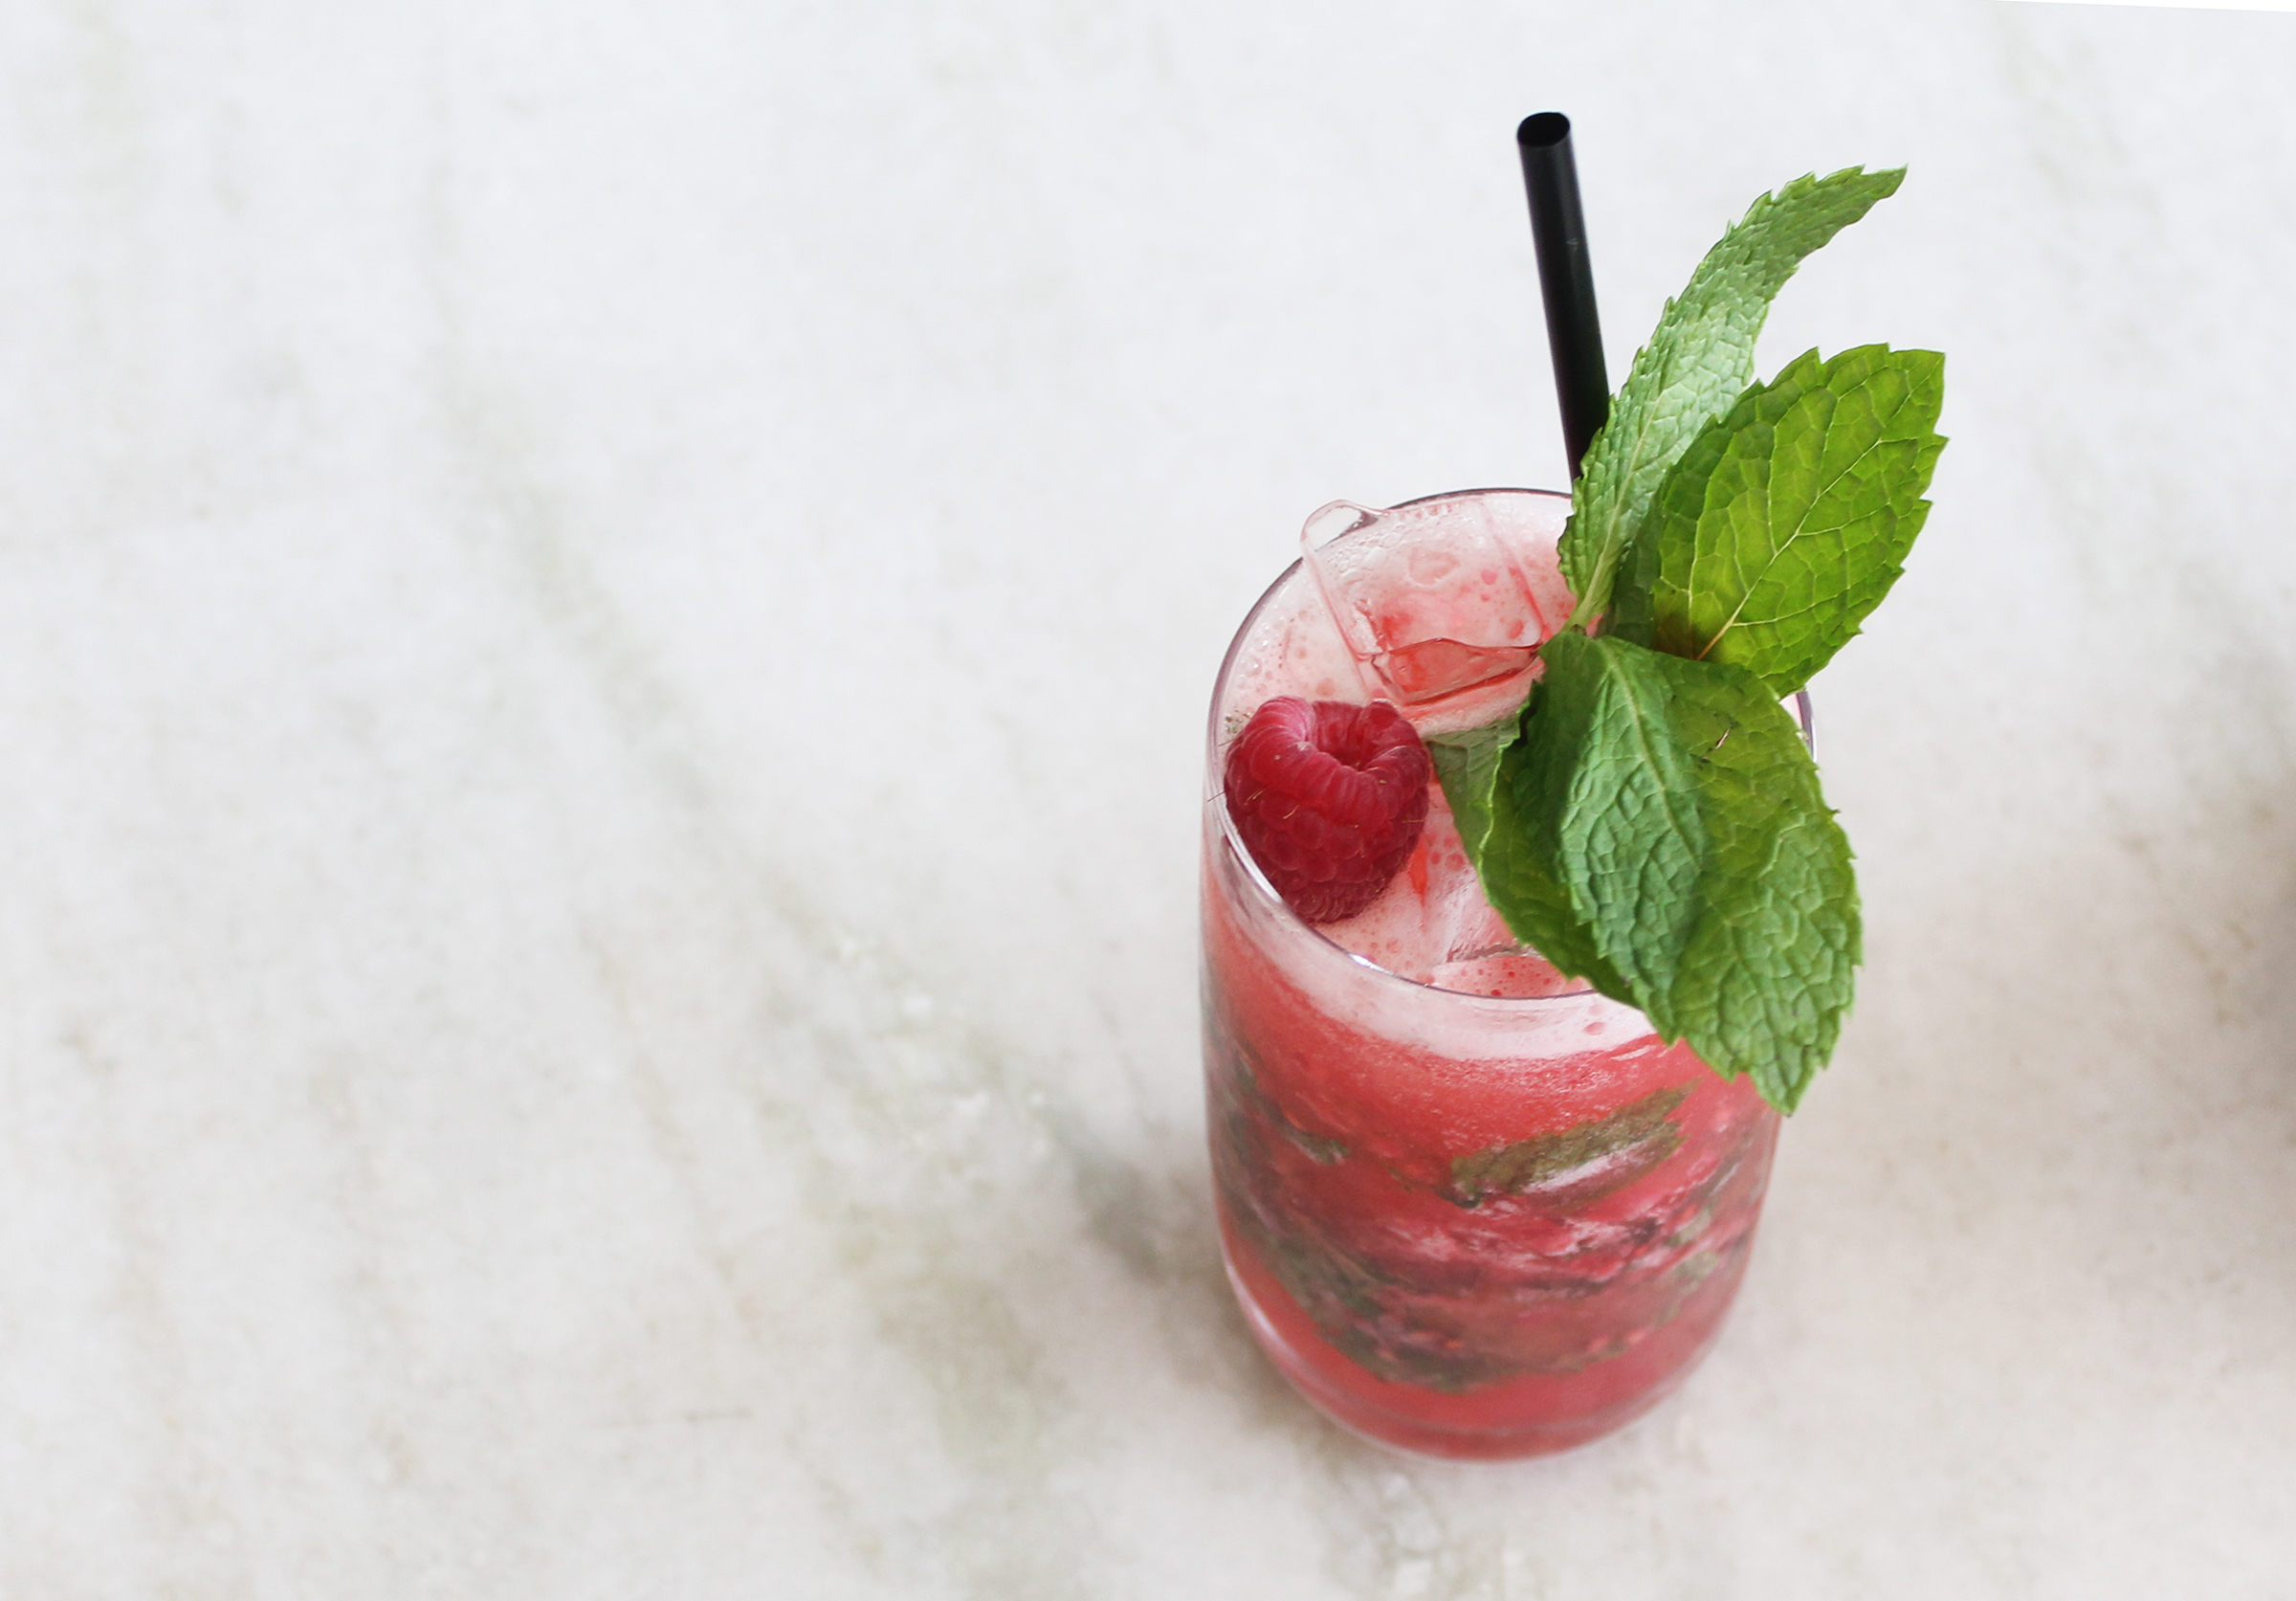 RASPBERRY MOJITO: Rum, muddled raspberry, fresh mint & lime juice topped with club soda